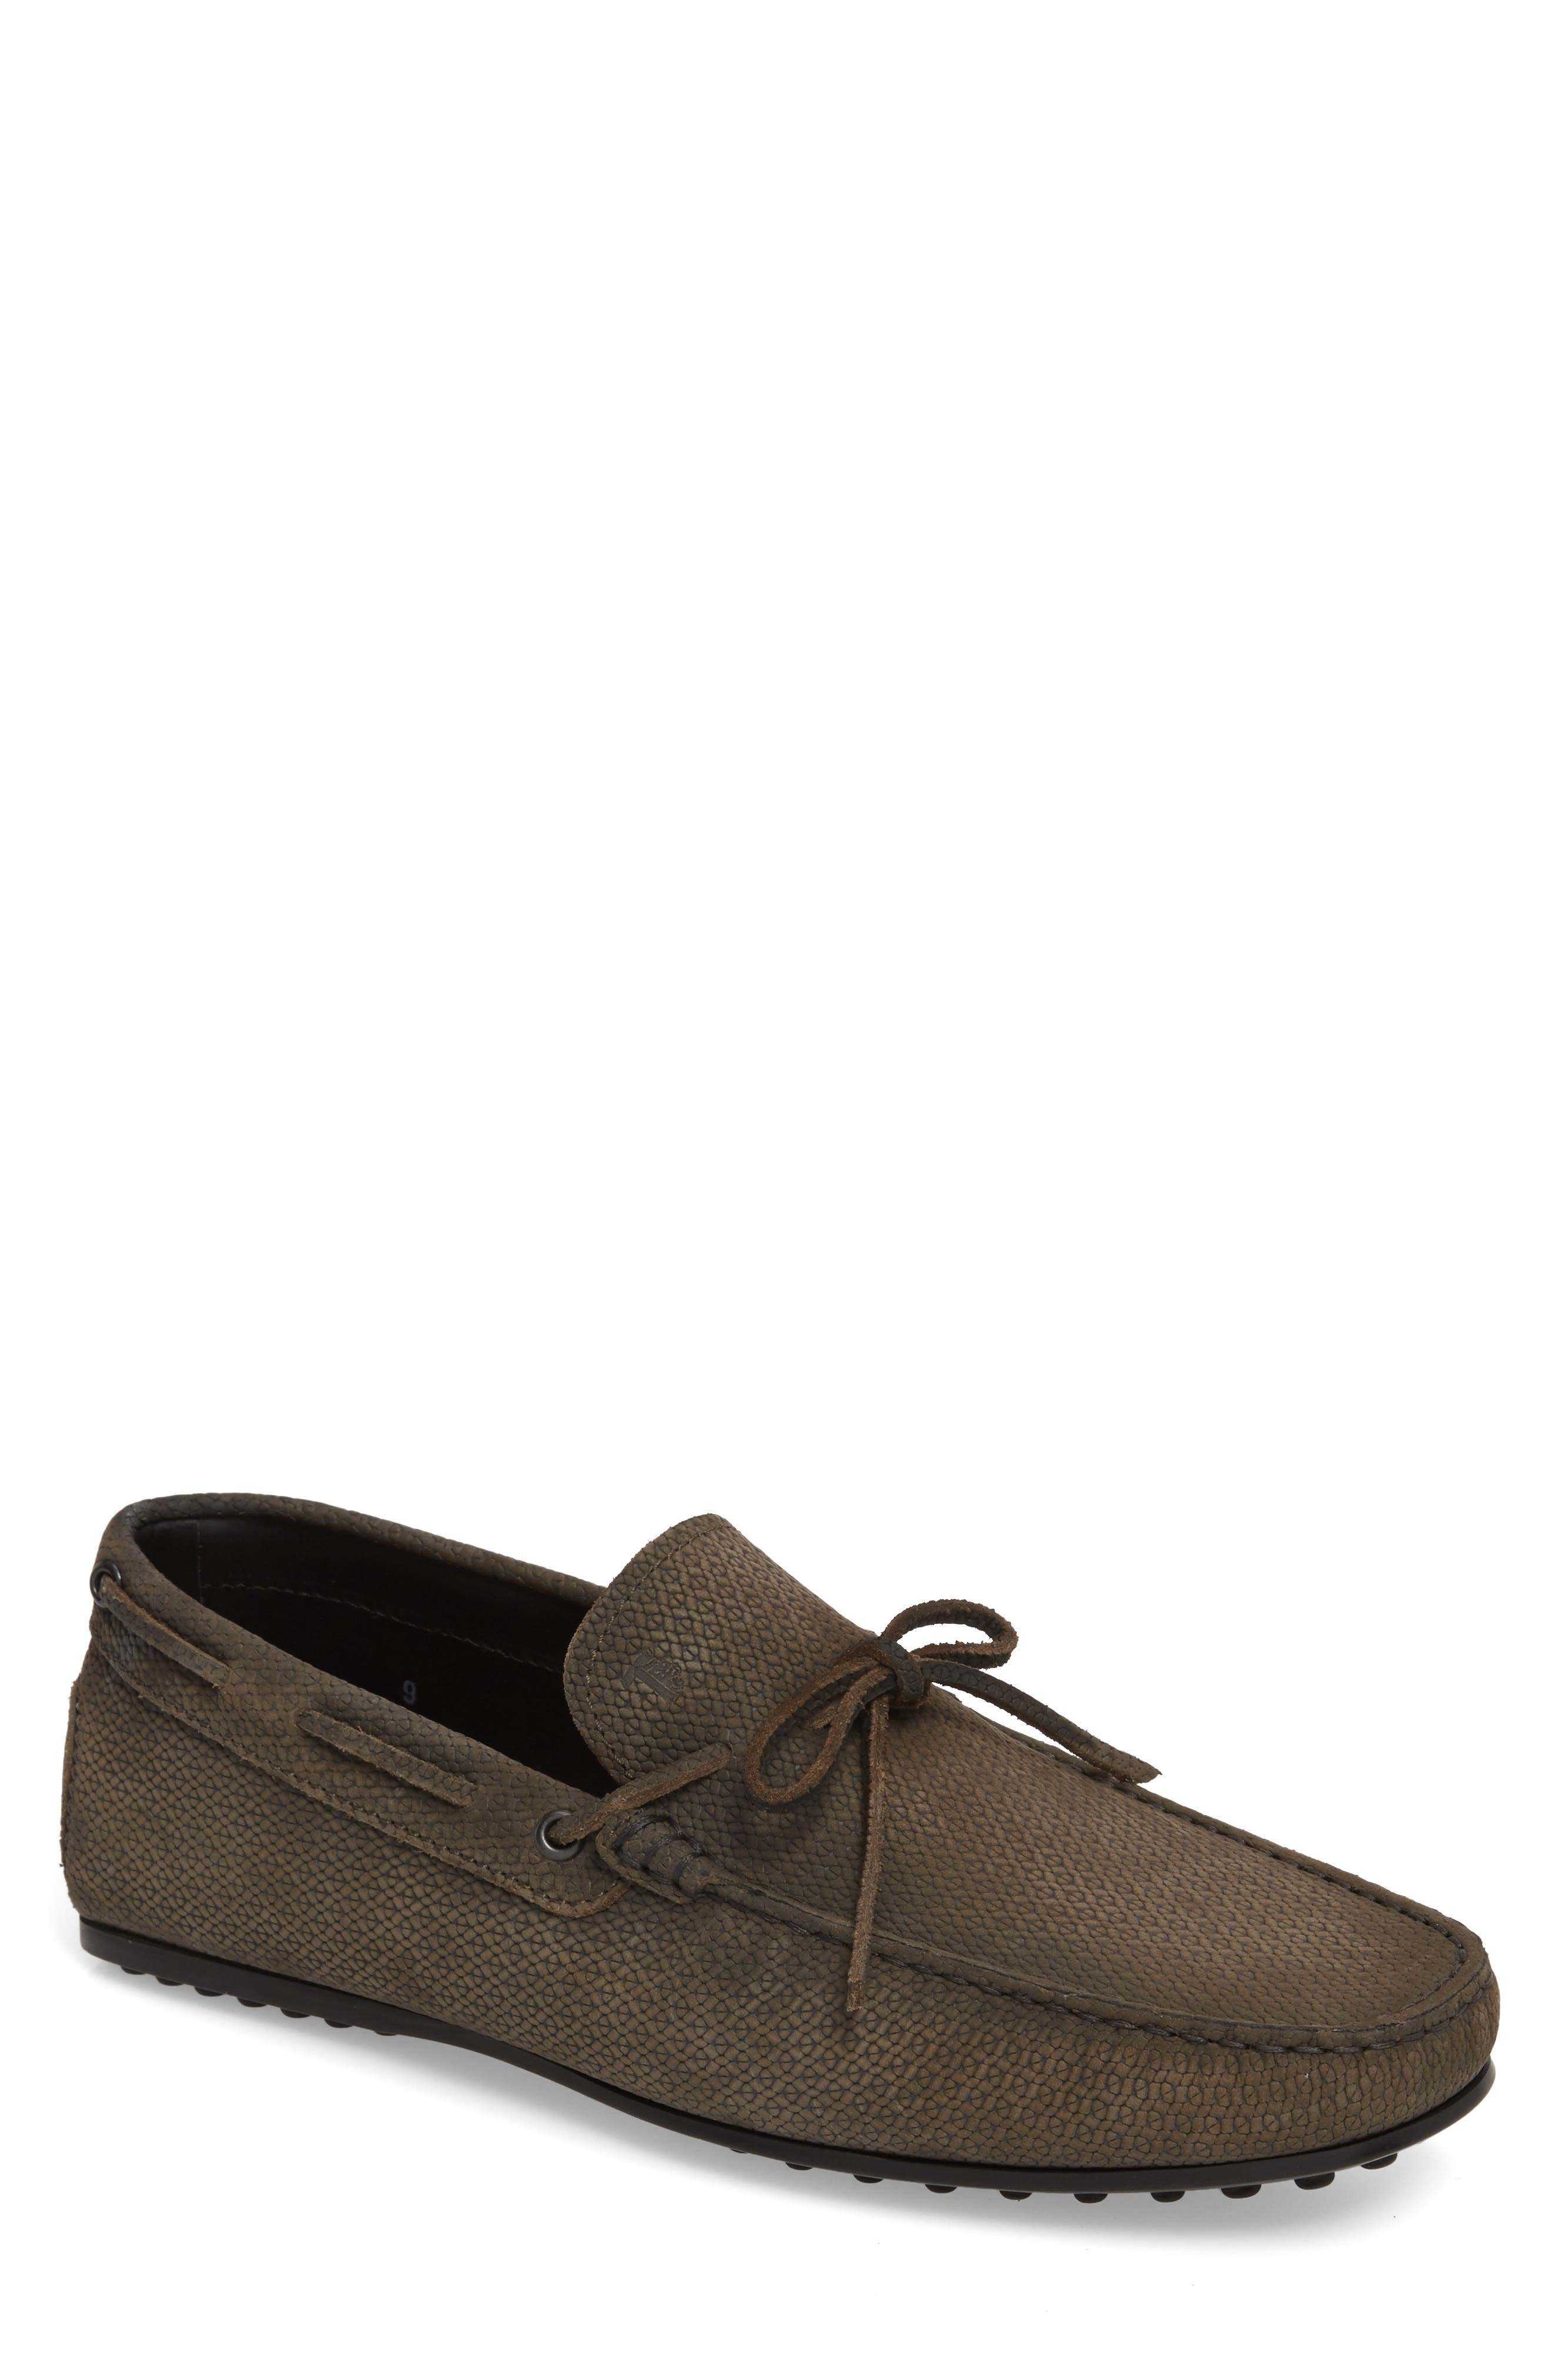 Tod's City Tie Gommini Driving Moccasin (Men)